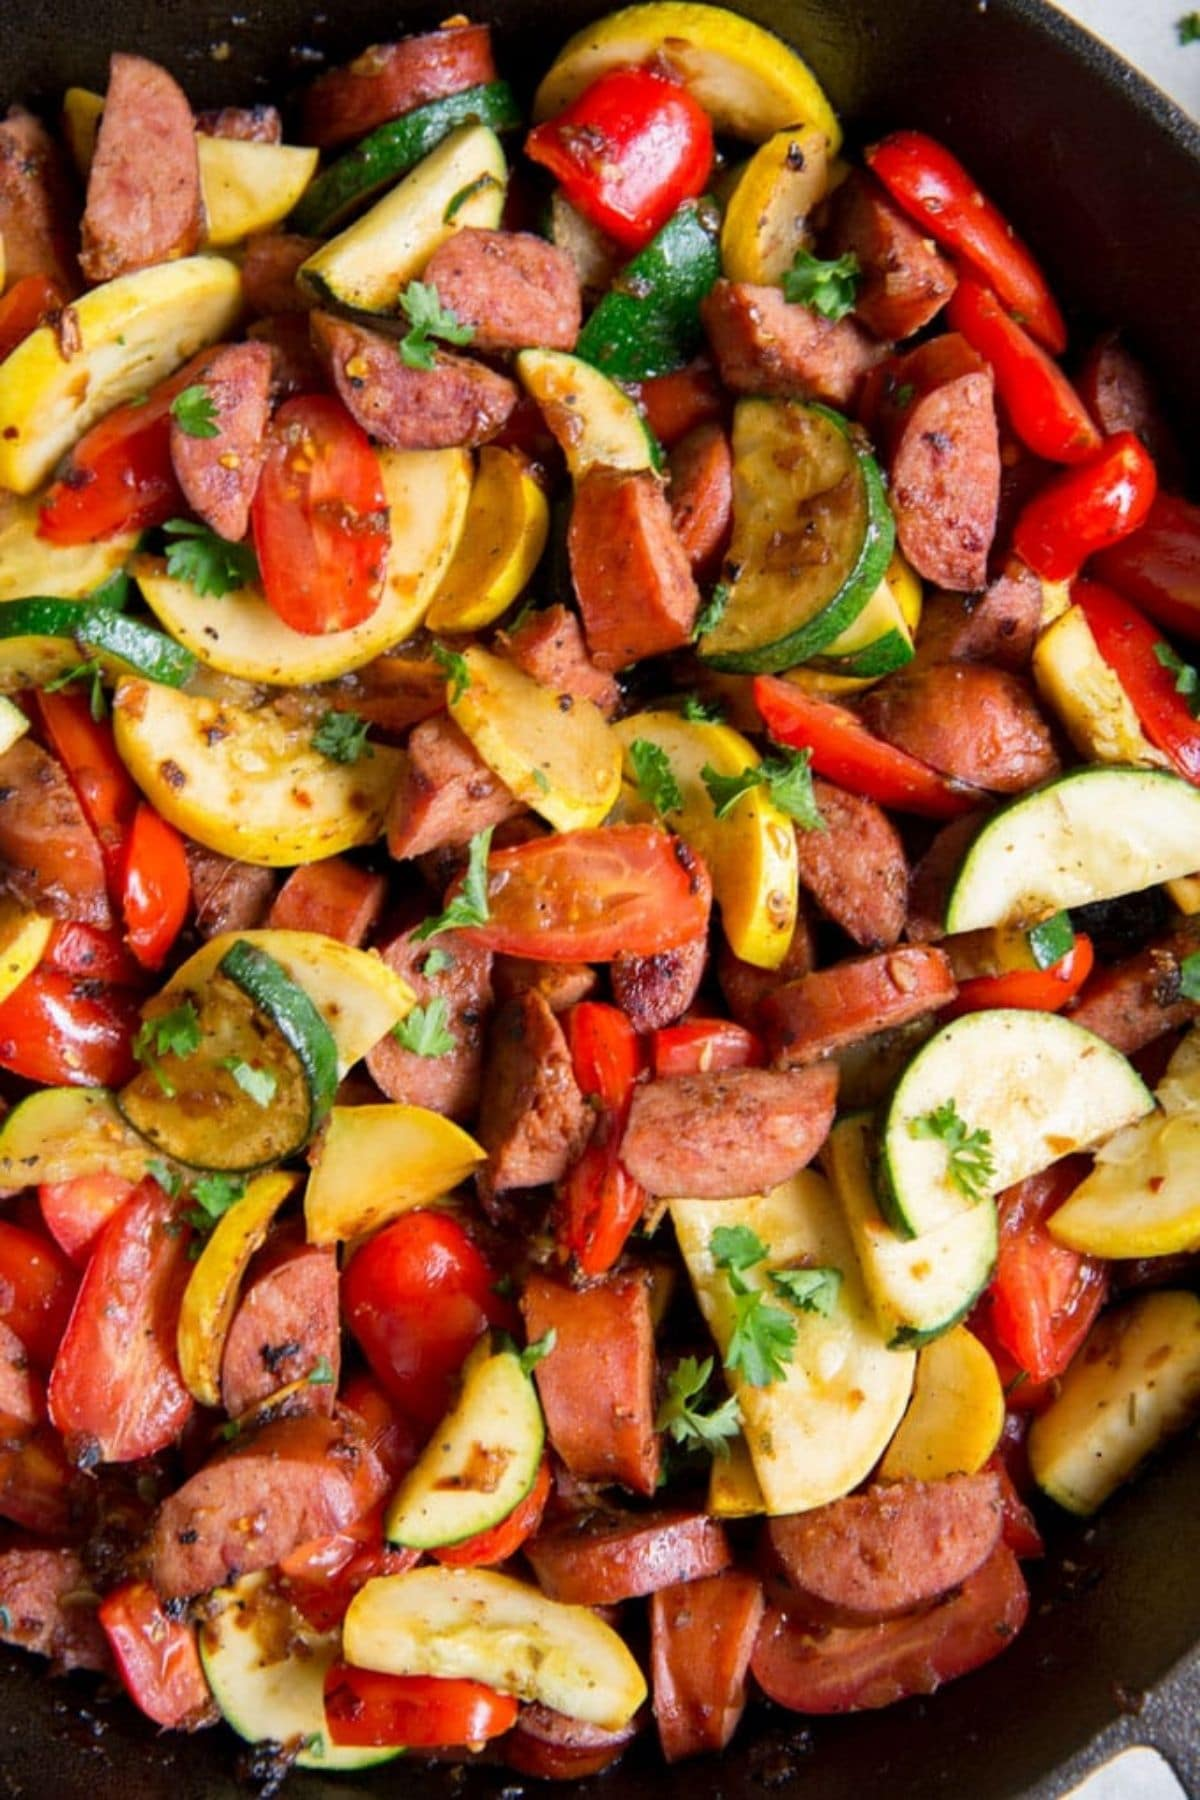 Sausage and zucchini in cast iron skillet